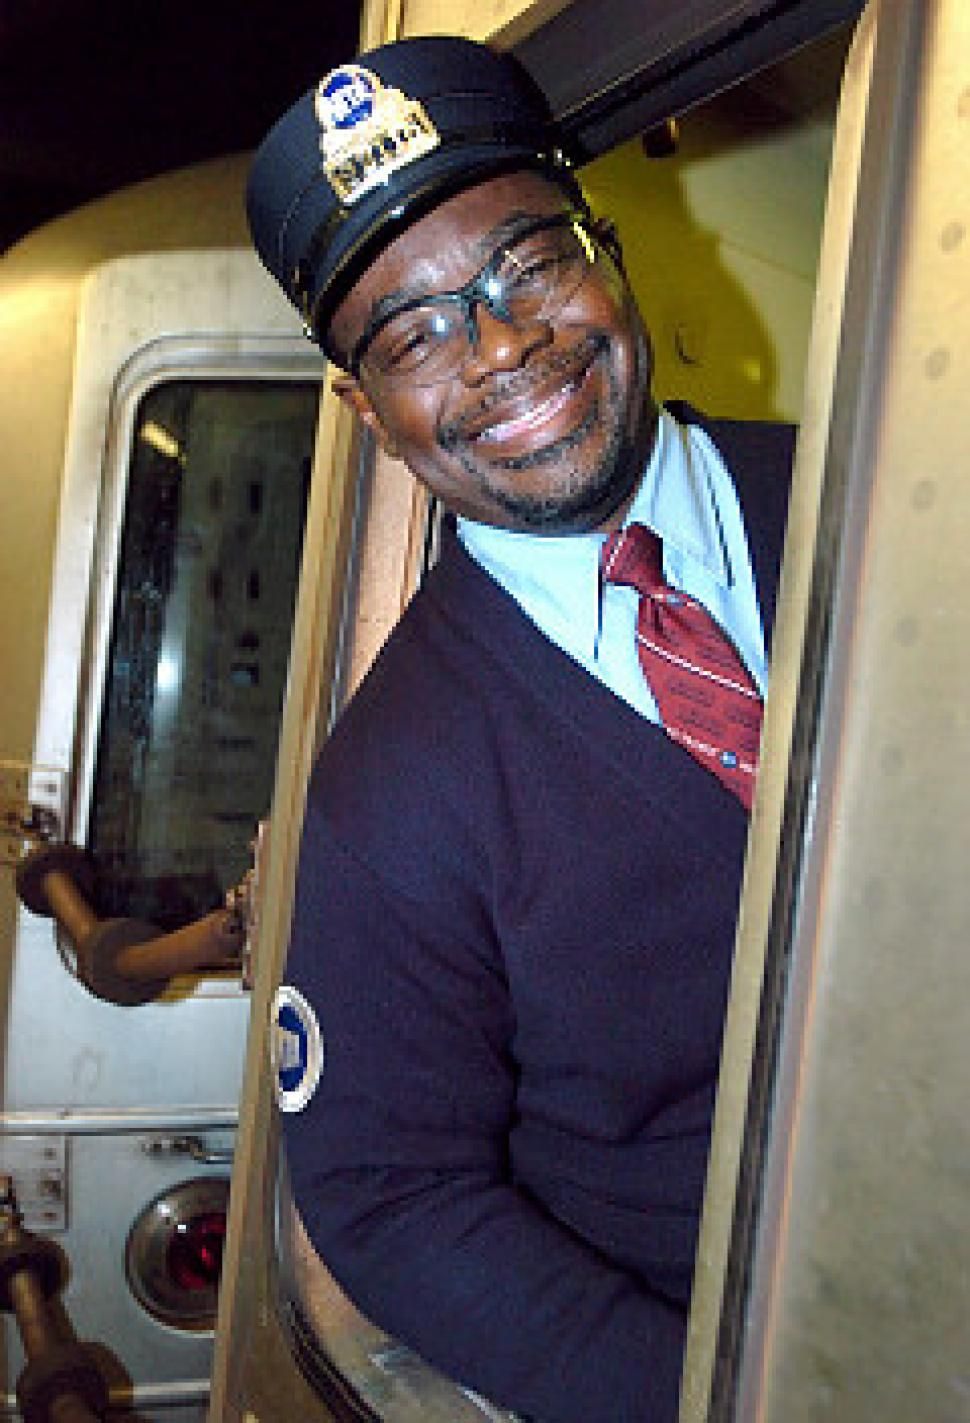 Vintage Subway Conductor's Outfit- Halloween inspiration